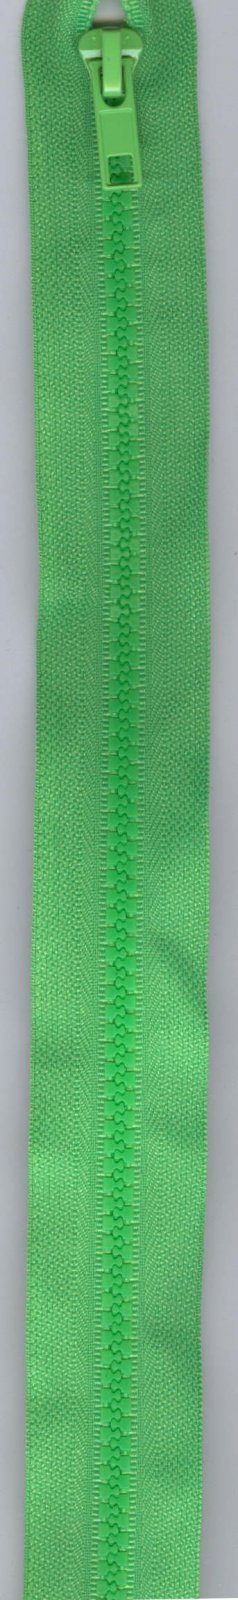 16 Separating Zipper #5 - Green with Green Pull